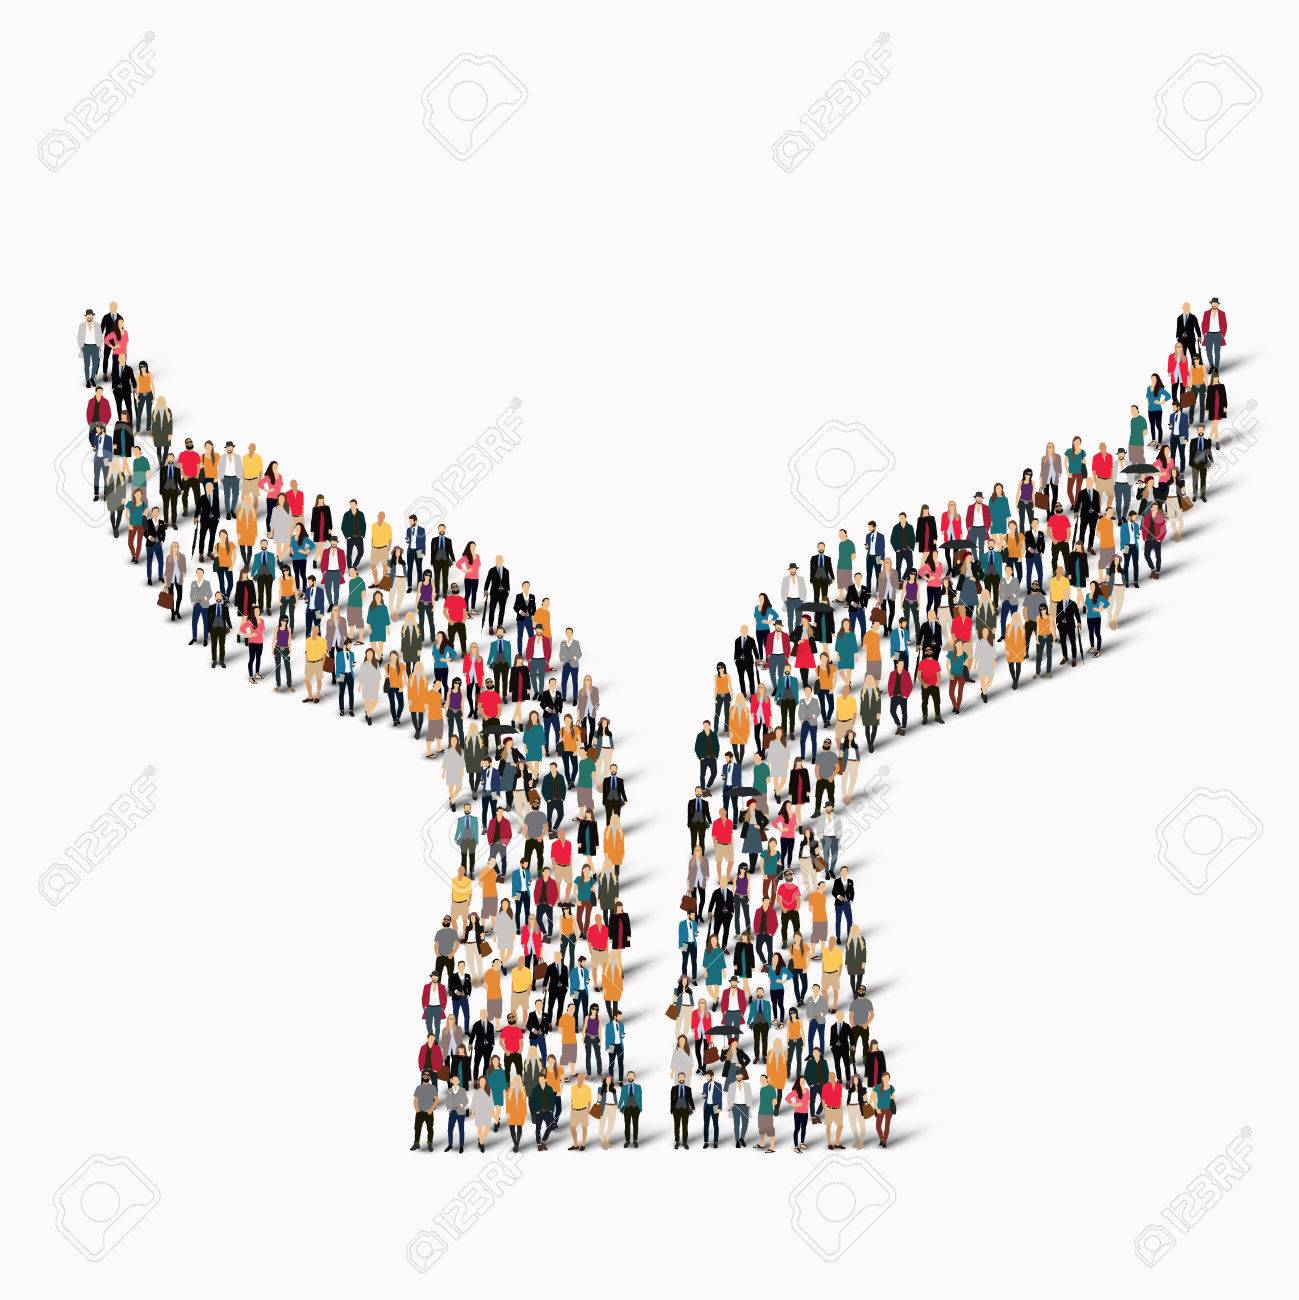 A large group of people in the shape of a hand. illustration - 48125860